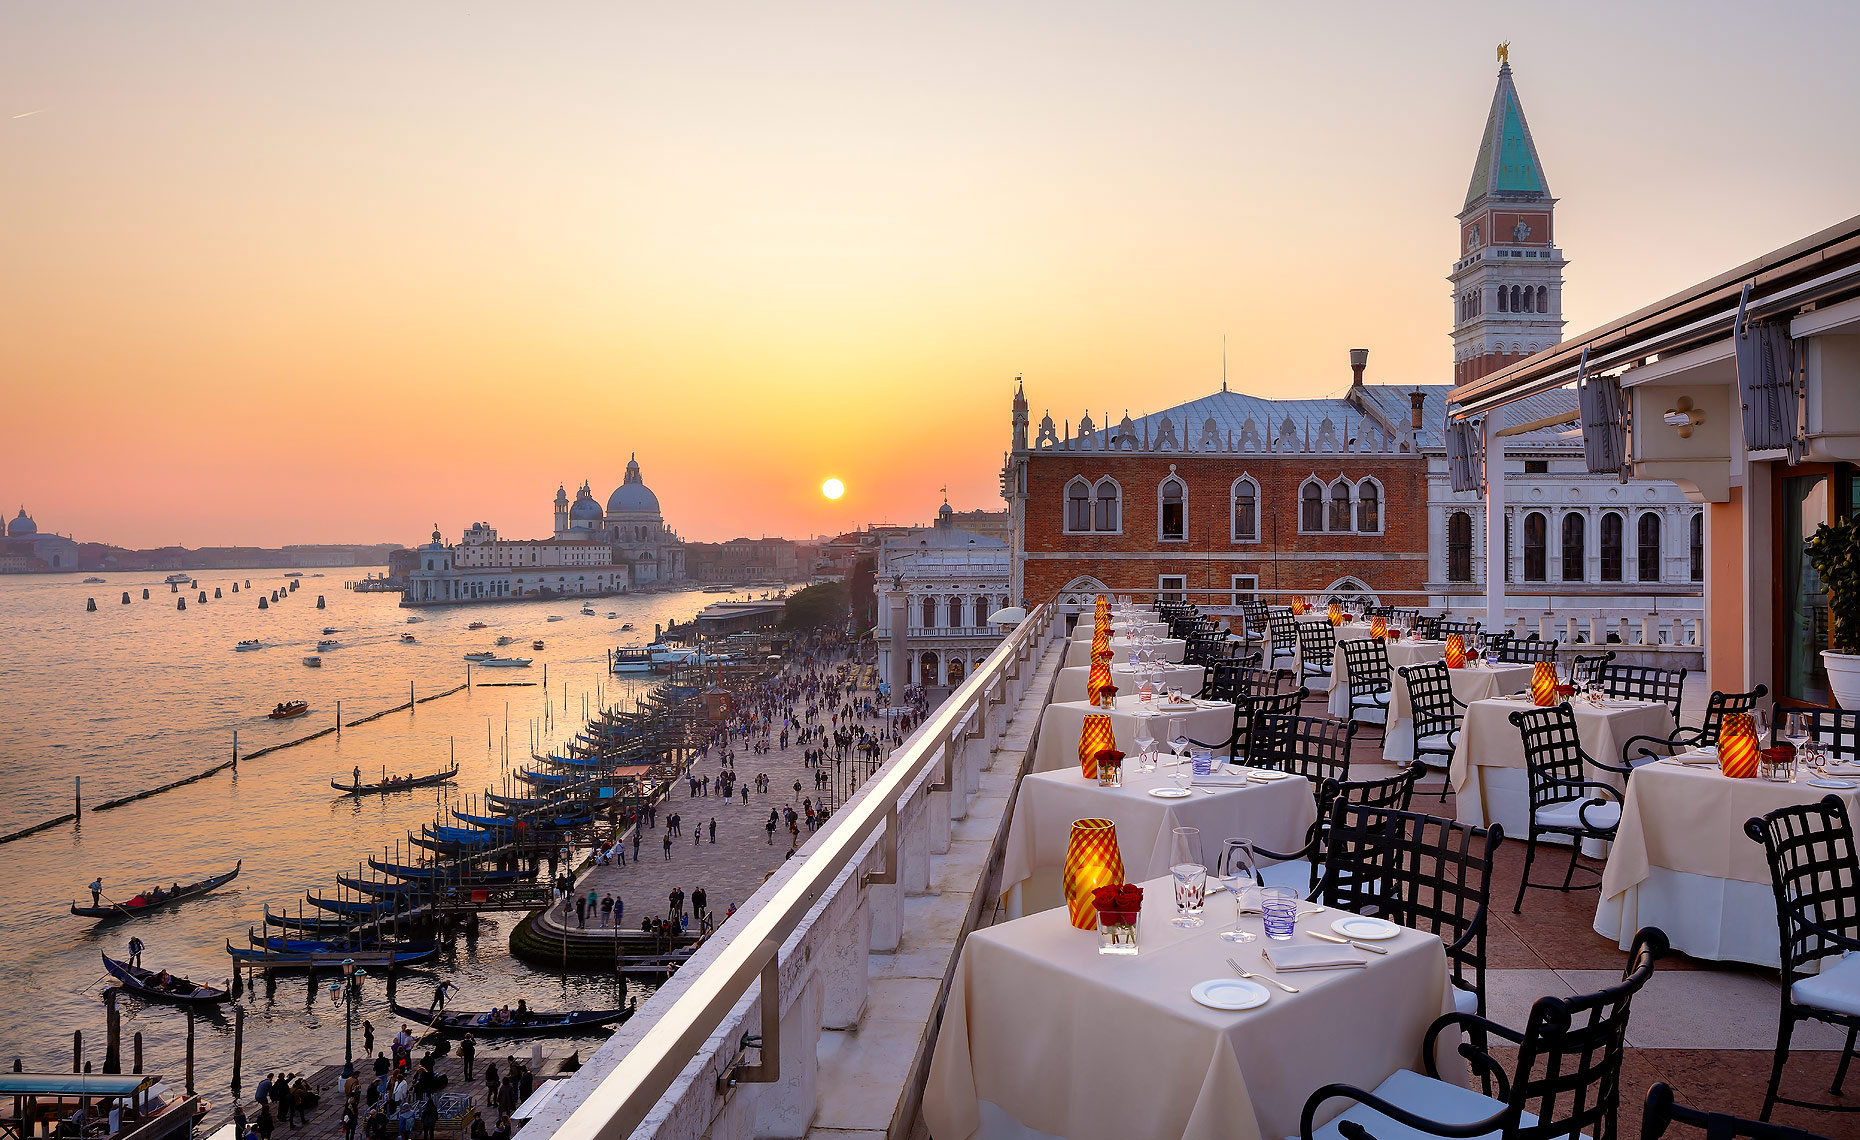 Hotel_Danieli_La_Terrazza_Restaurant_Venice_Italy - A Luxury Collection Hotel - Hotel Photography